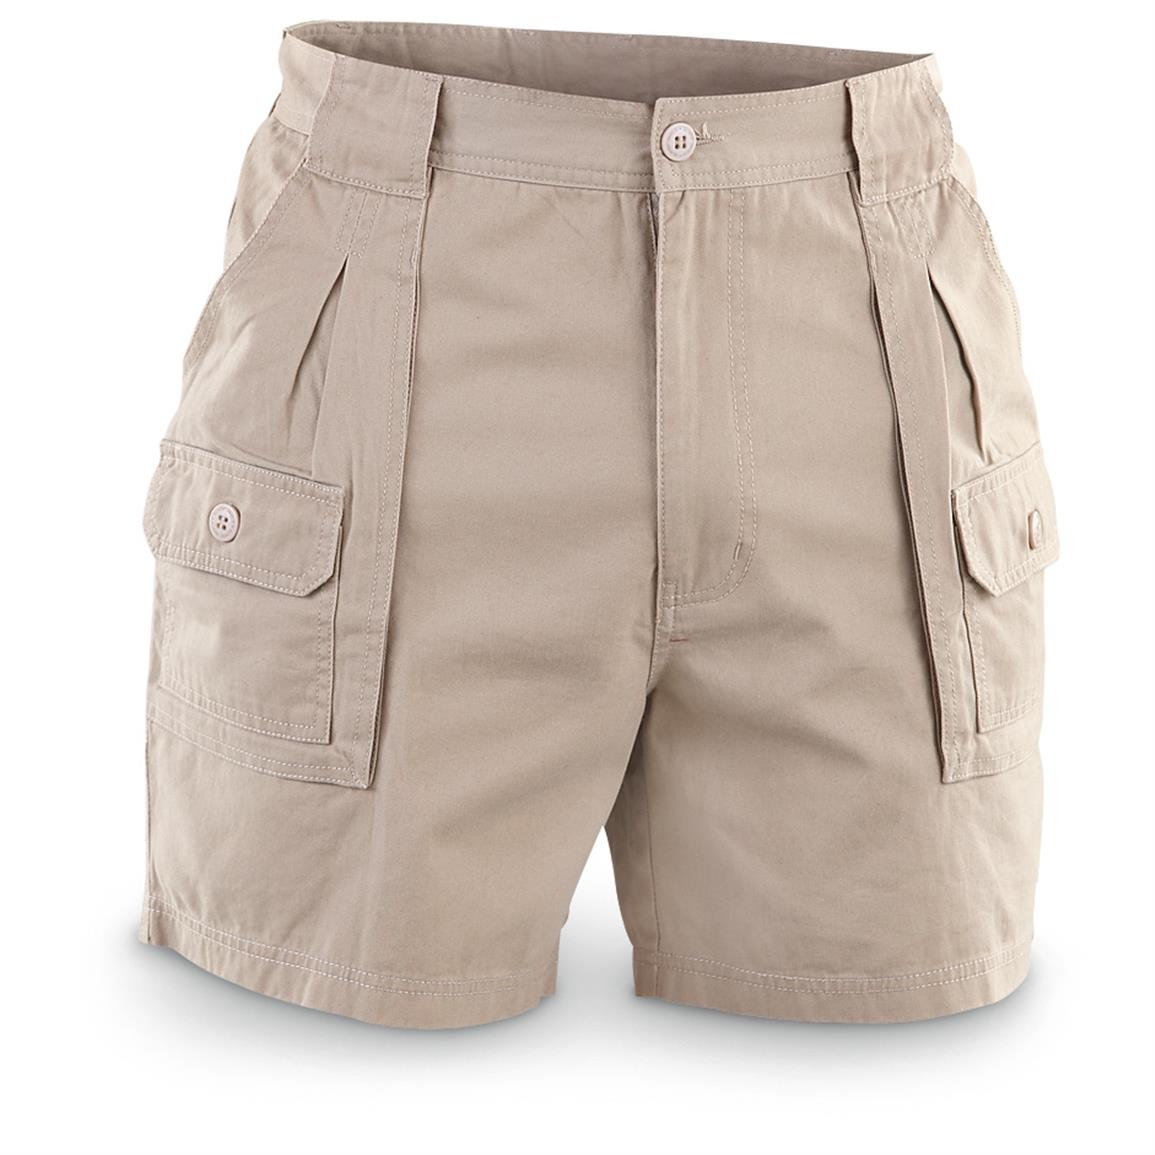 Explore men's trousers and shorts from Burberry - shop for chinos, corduroys, tailored trousers, denim jeans, Brit shorts and more. Explore men's trousers and shorts from Burberry - shop for chinos, corduroys, tailored trousers, denim jeans, Brit shorts and more.